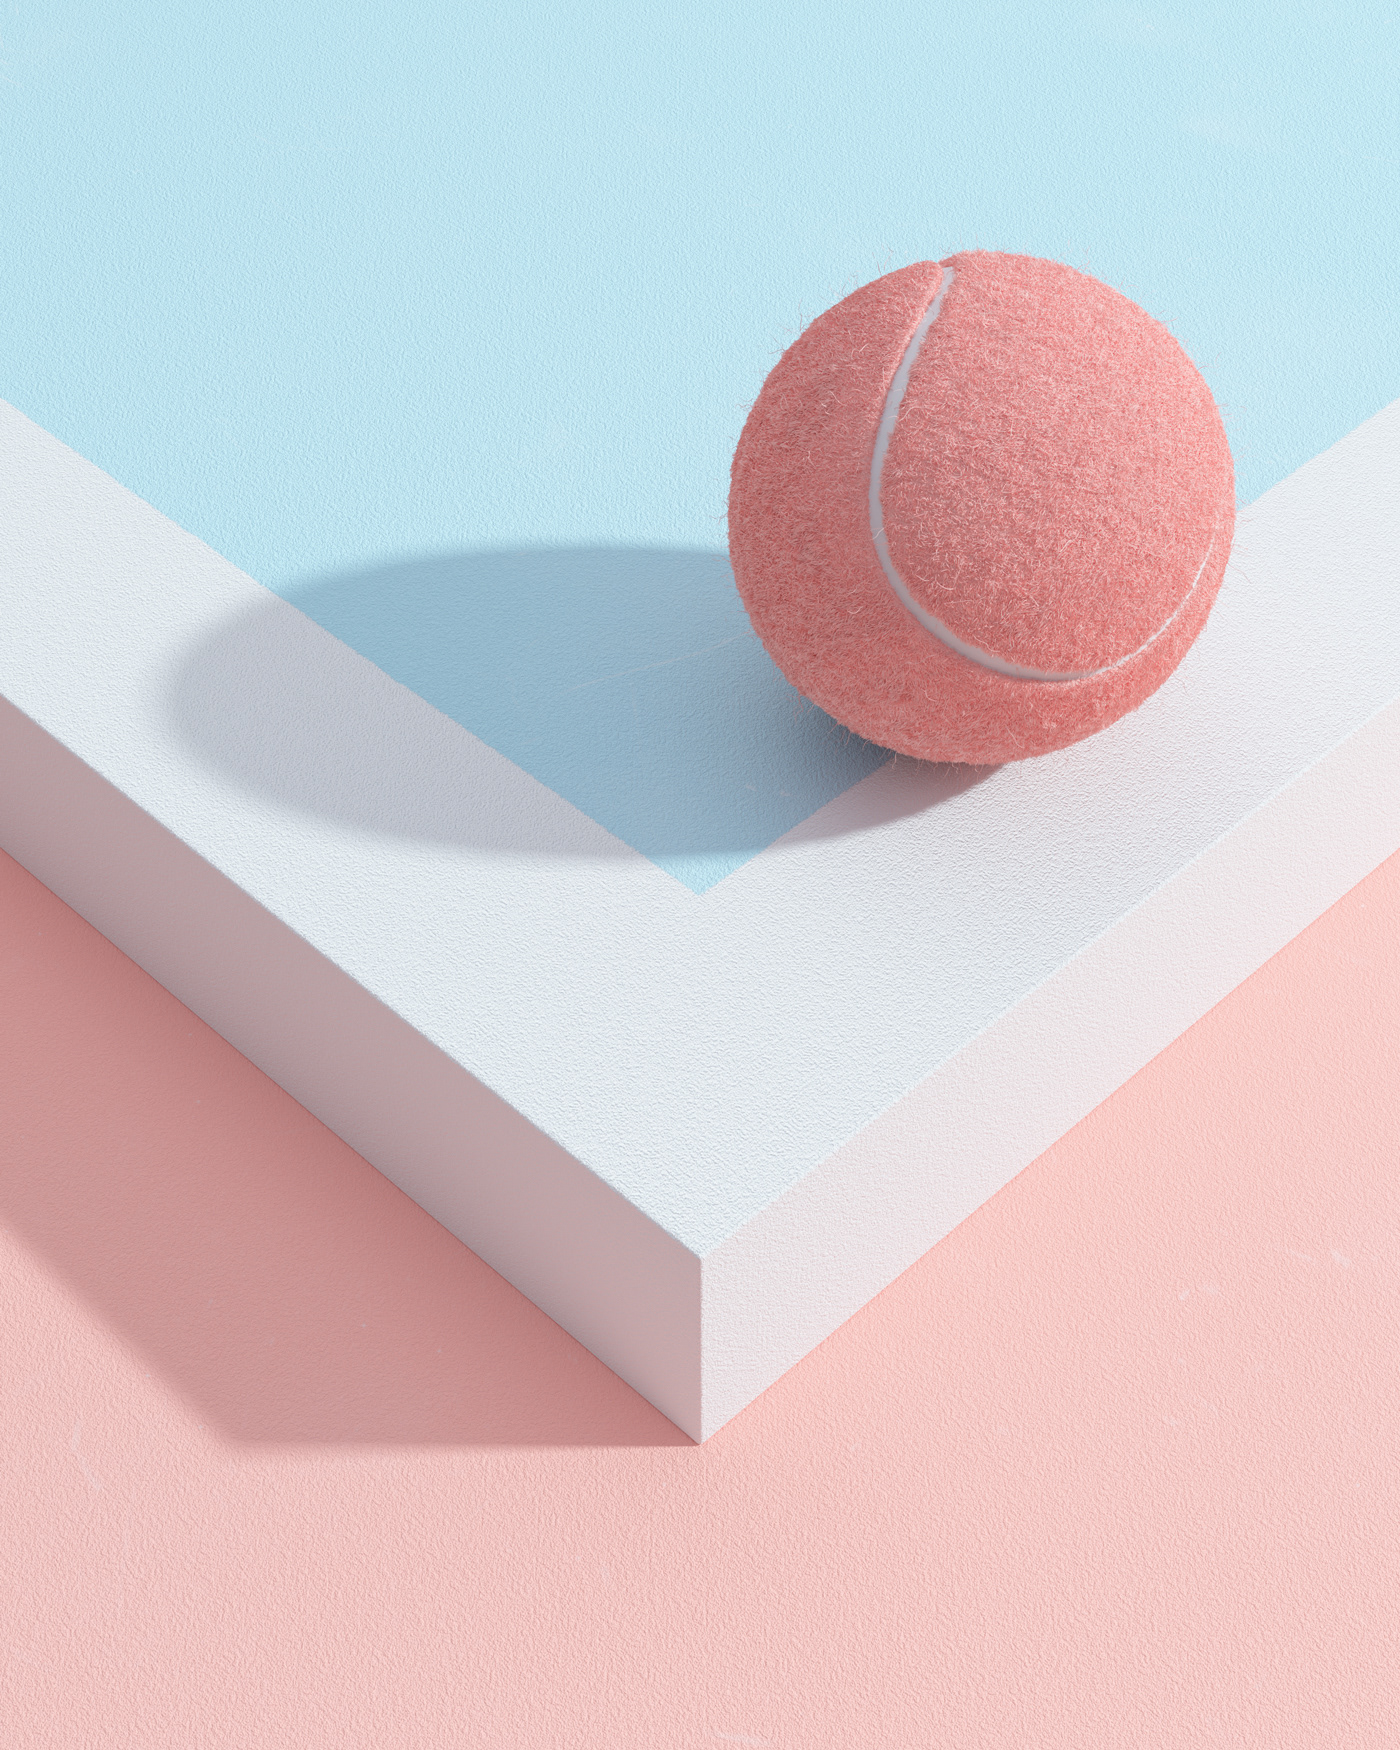 Tennis Illustration Series